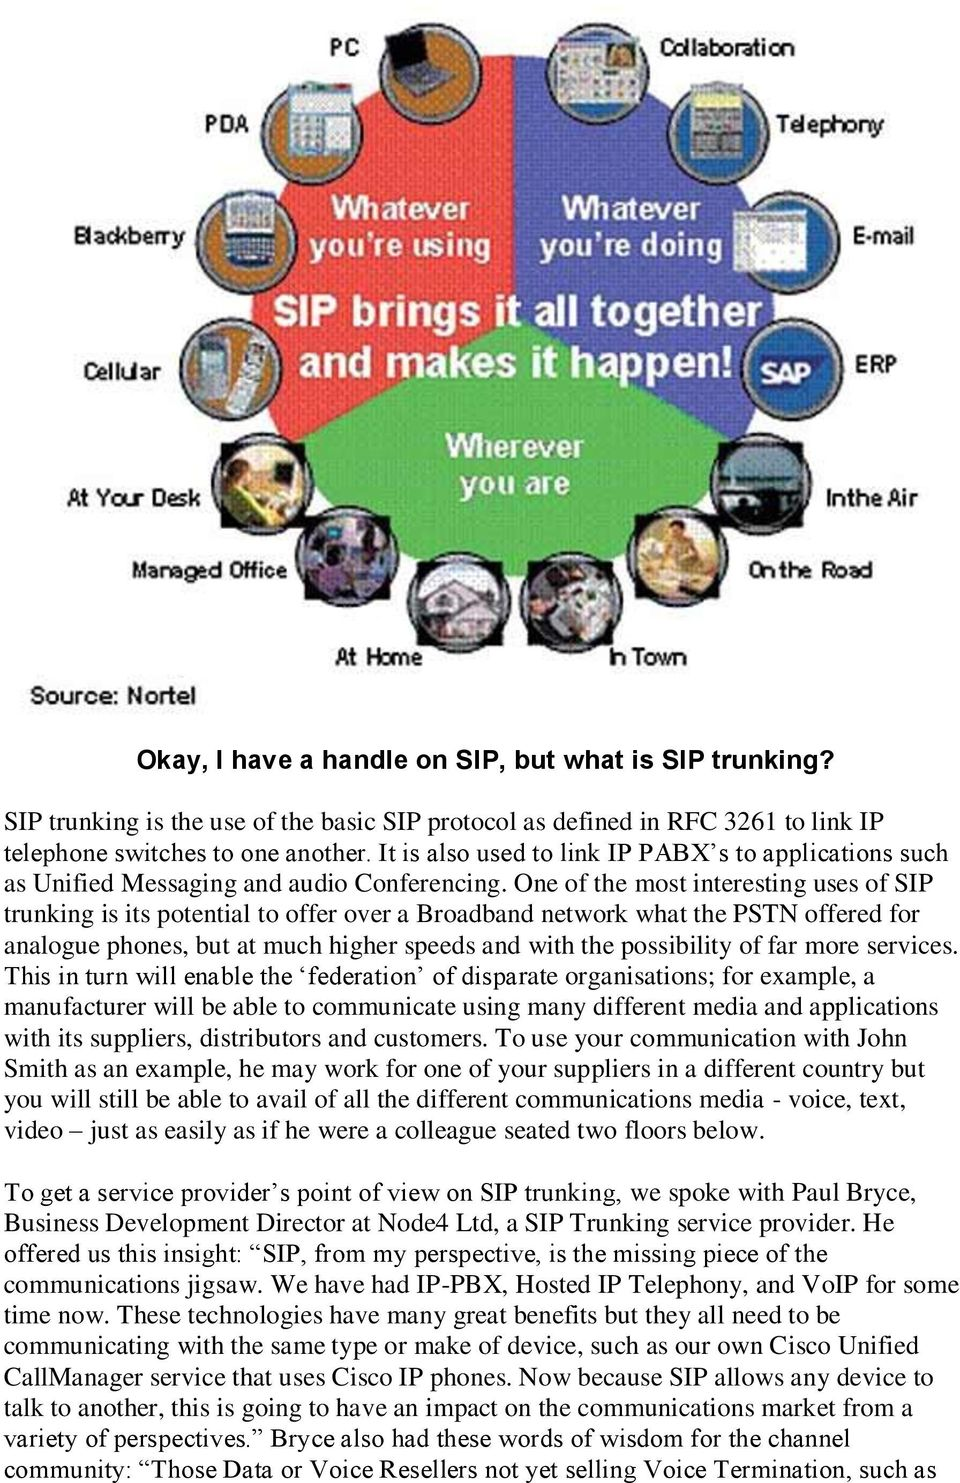 One of the most interesting uses of SIP trunking is its potential to offer over a Broadband network what the PSTN offered for analogue phones, but at much higher speeds and with the possibility of